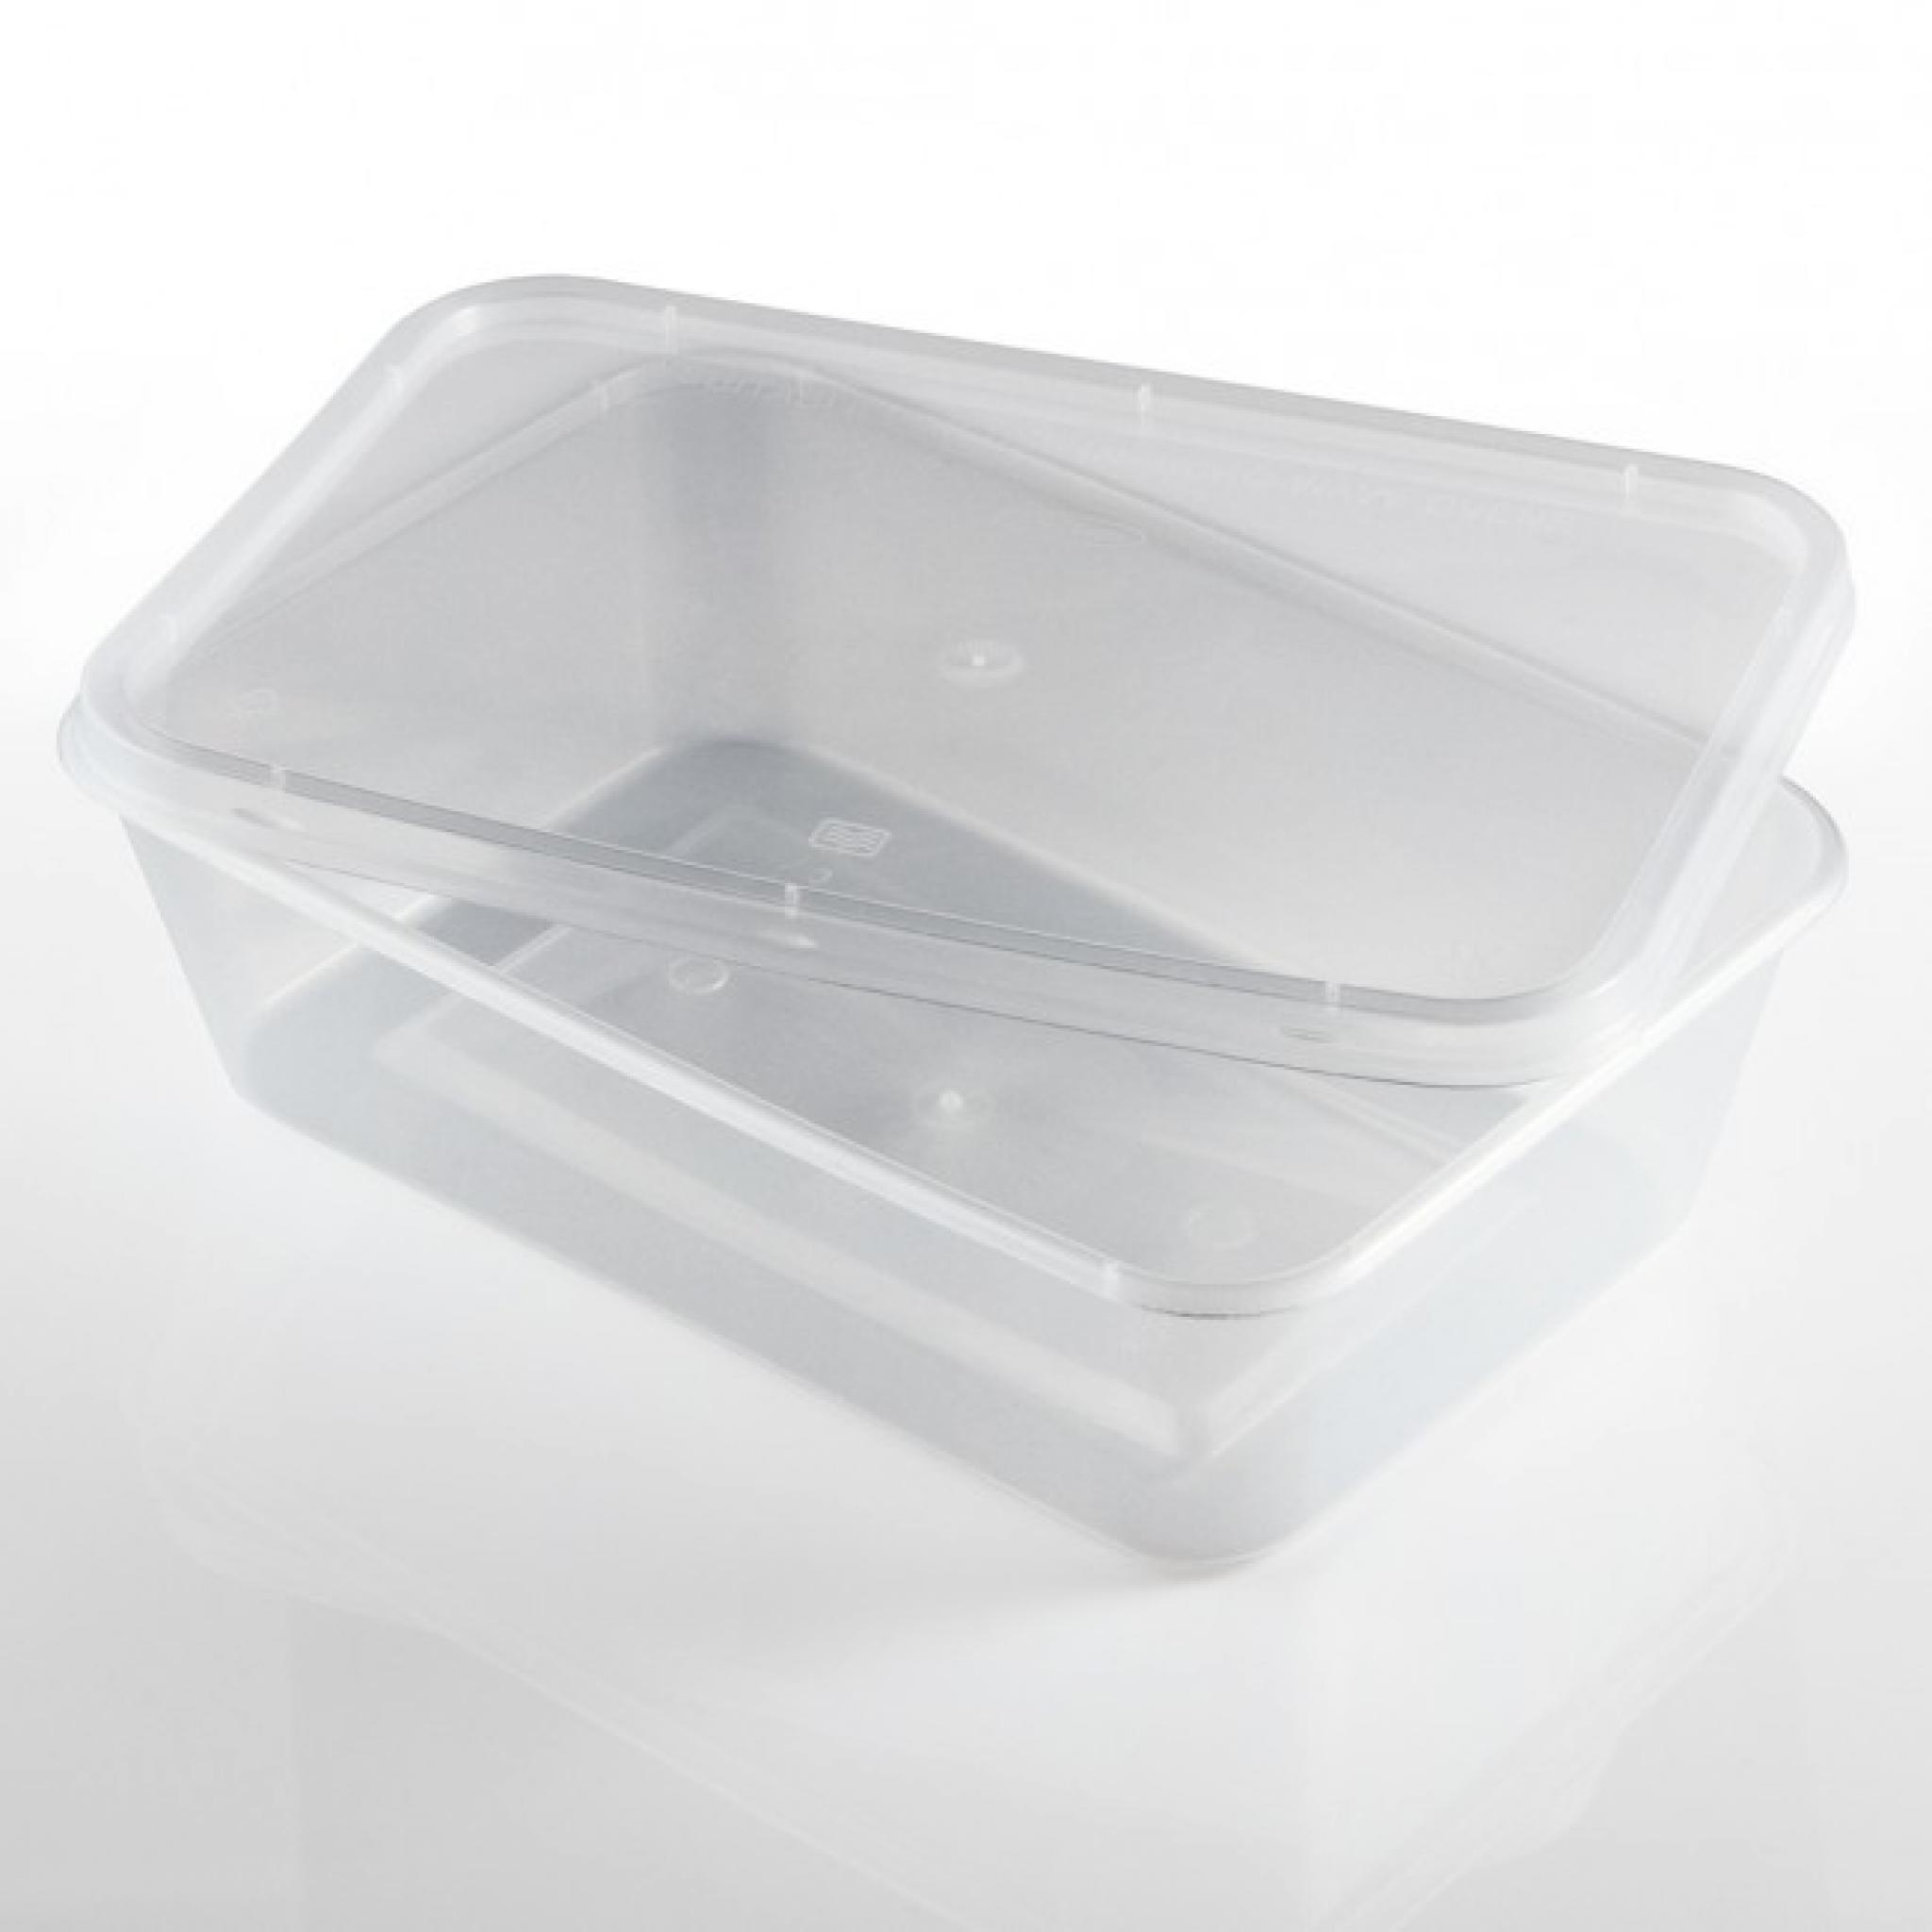 Rectangular 650ml Microwave Clear Plastic Food Containers for Freezing  Takeaway Hot Cold Foods - 650cc